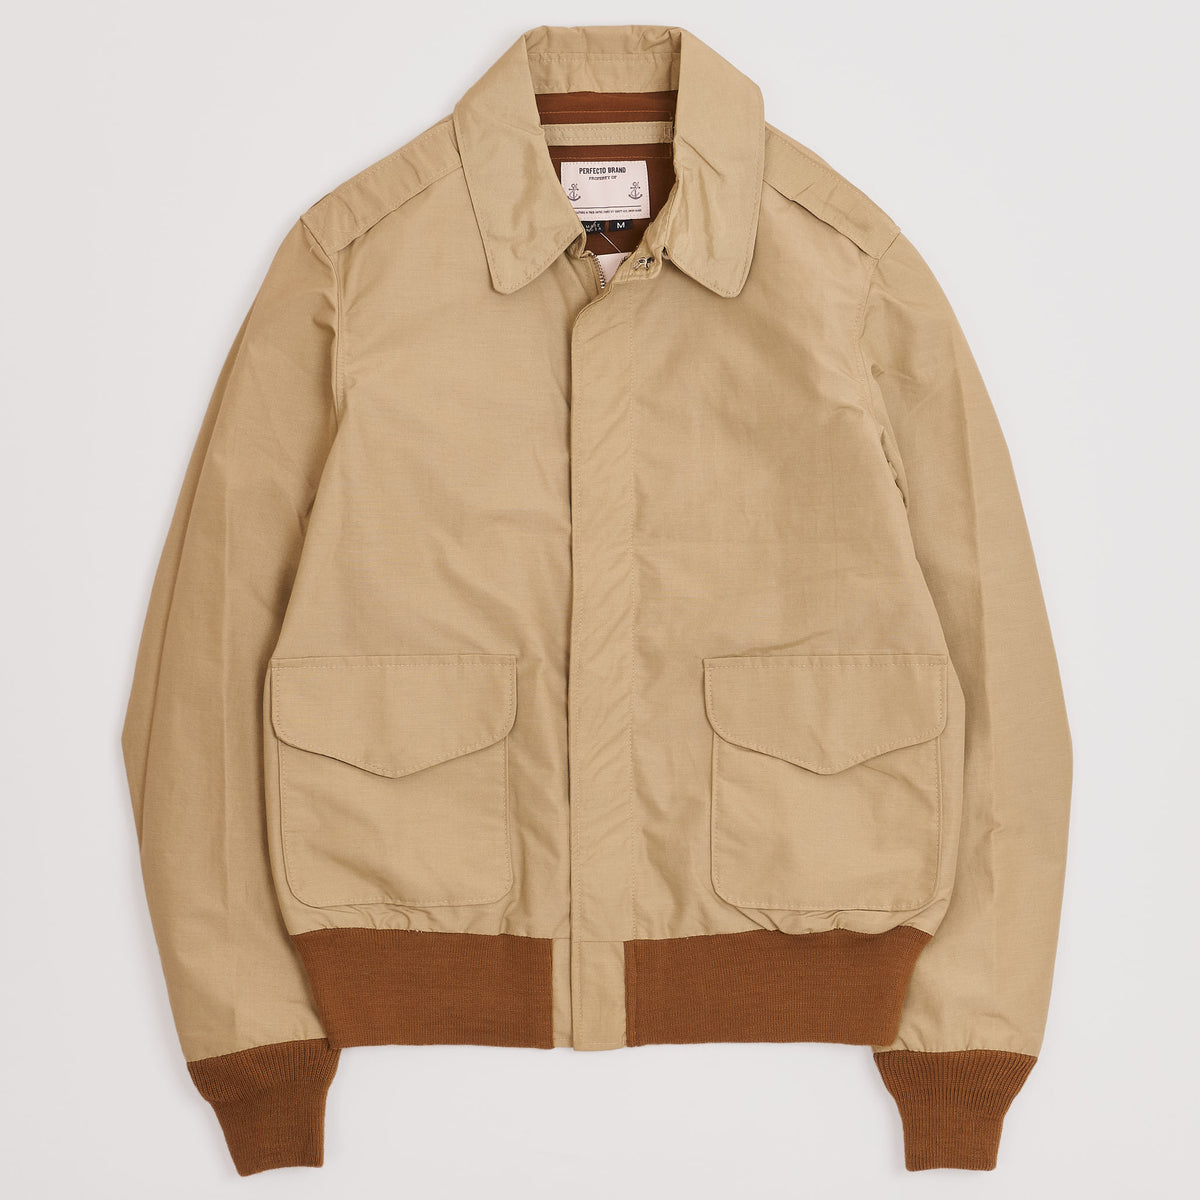 Schott NYC A-2 Aviation Summer Jacket